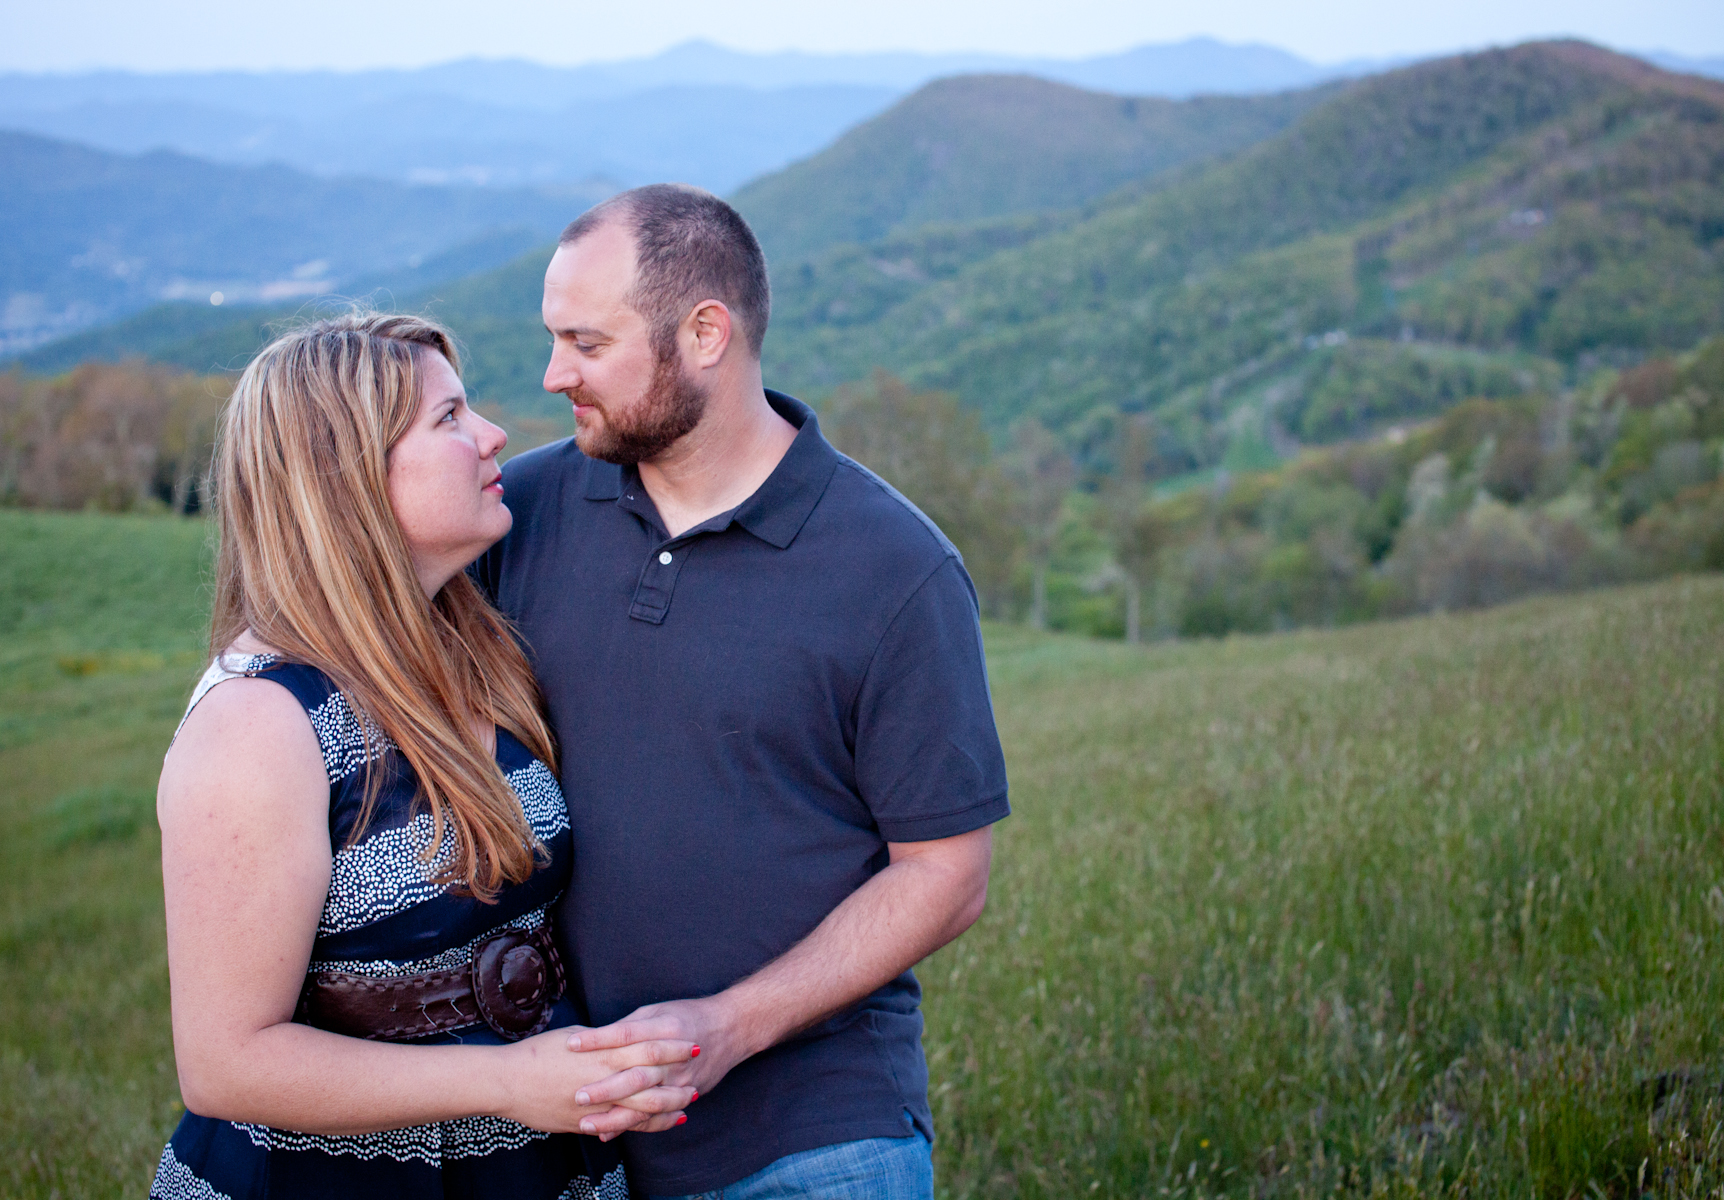 mikeala engagement session-58.jpg